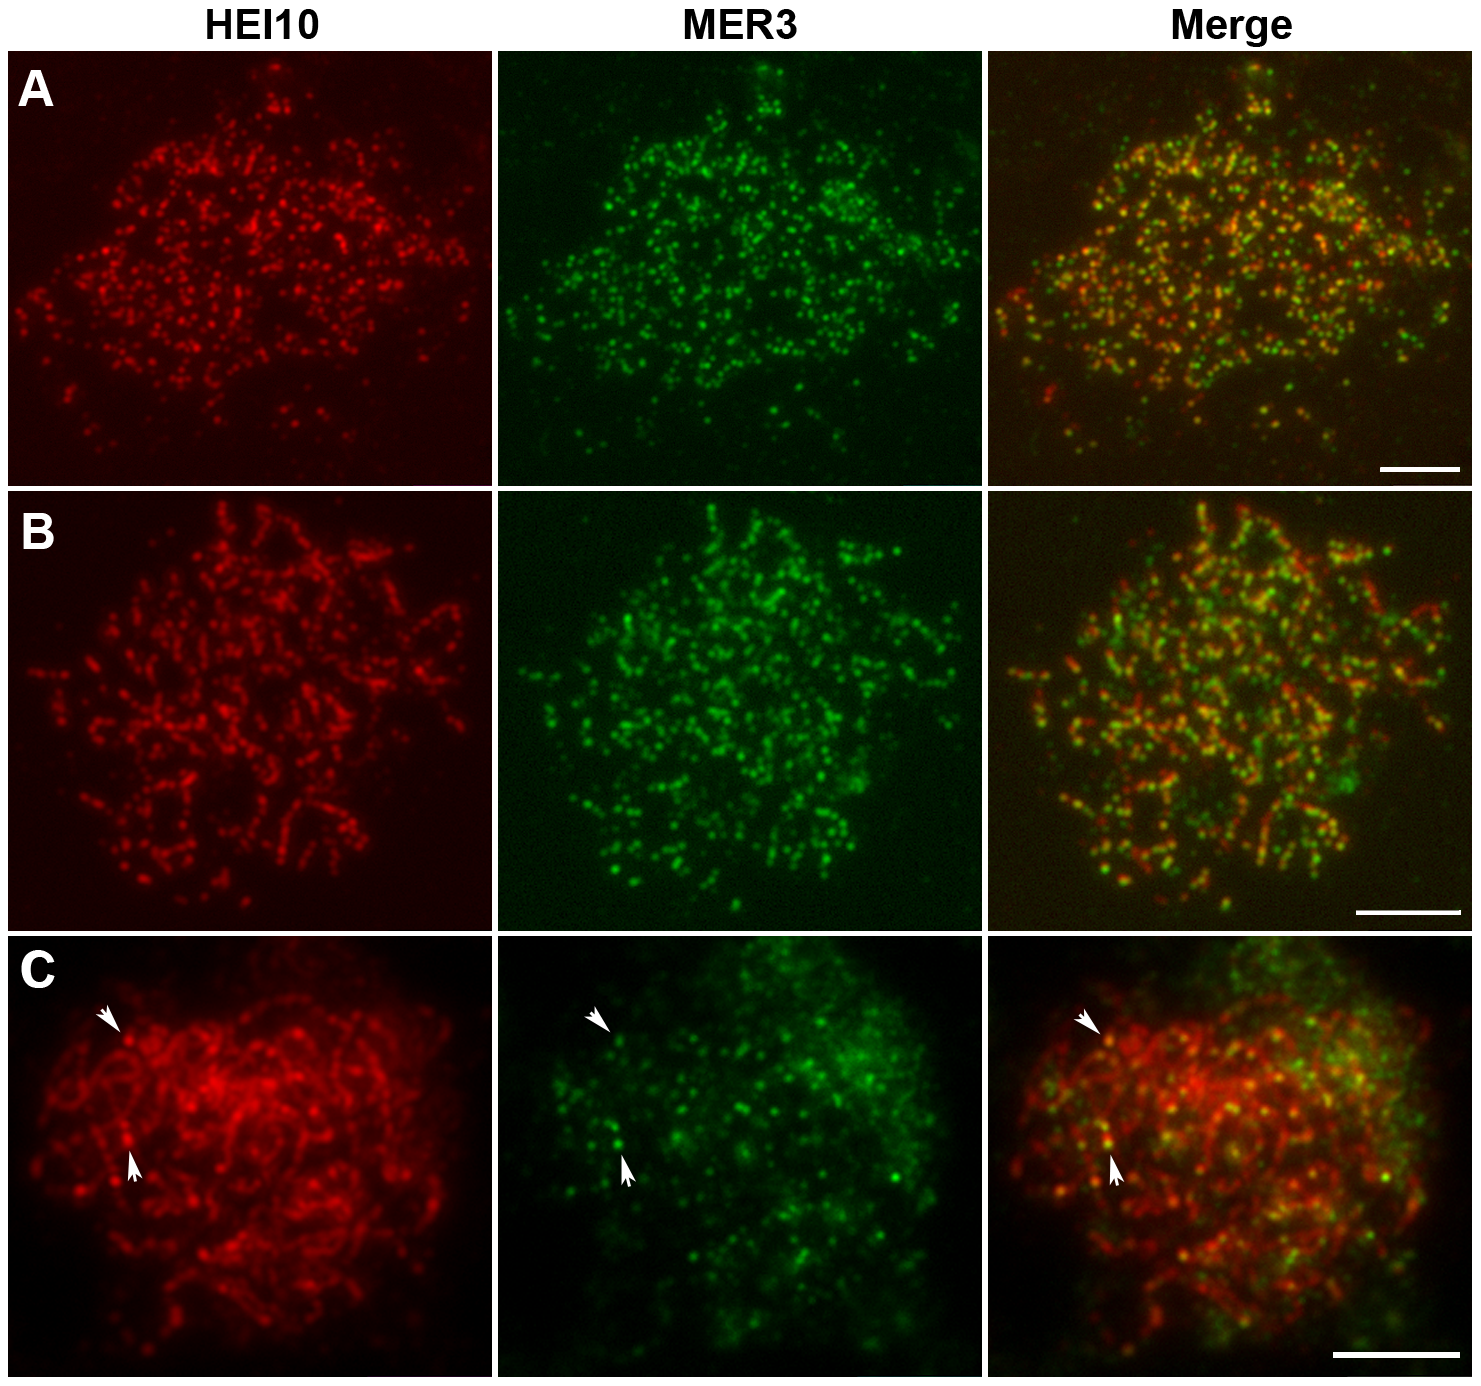 Dual immunolocalization of HEI10 and MER3 in WT meiocytes.